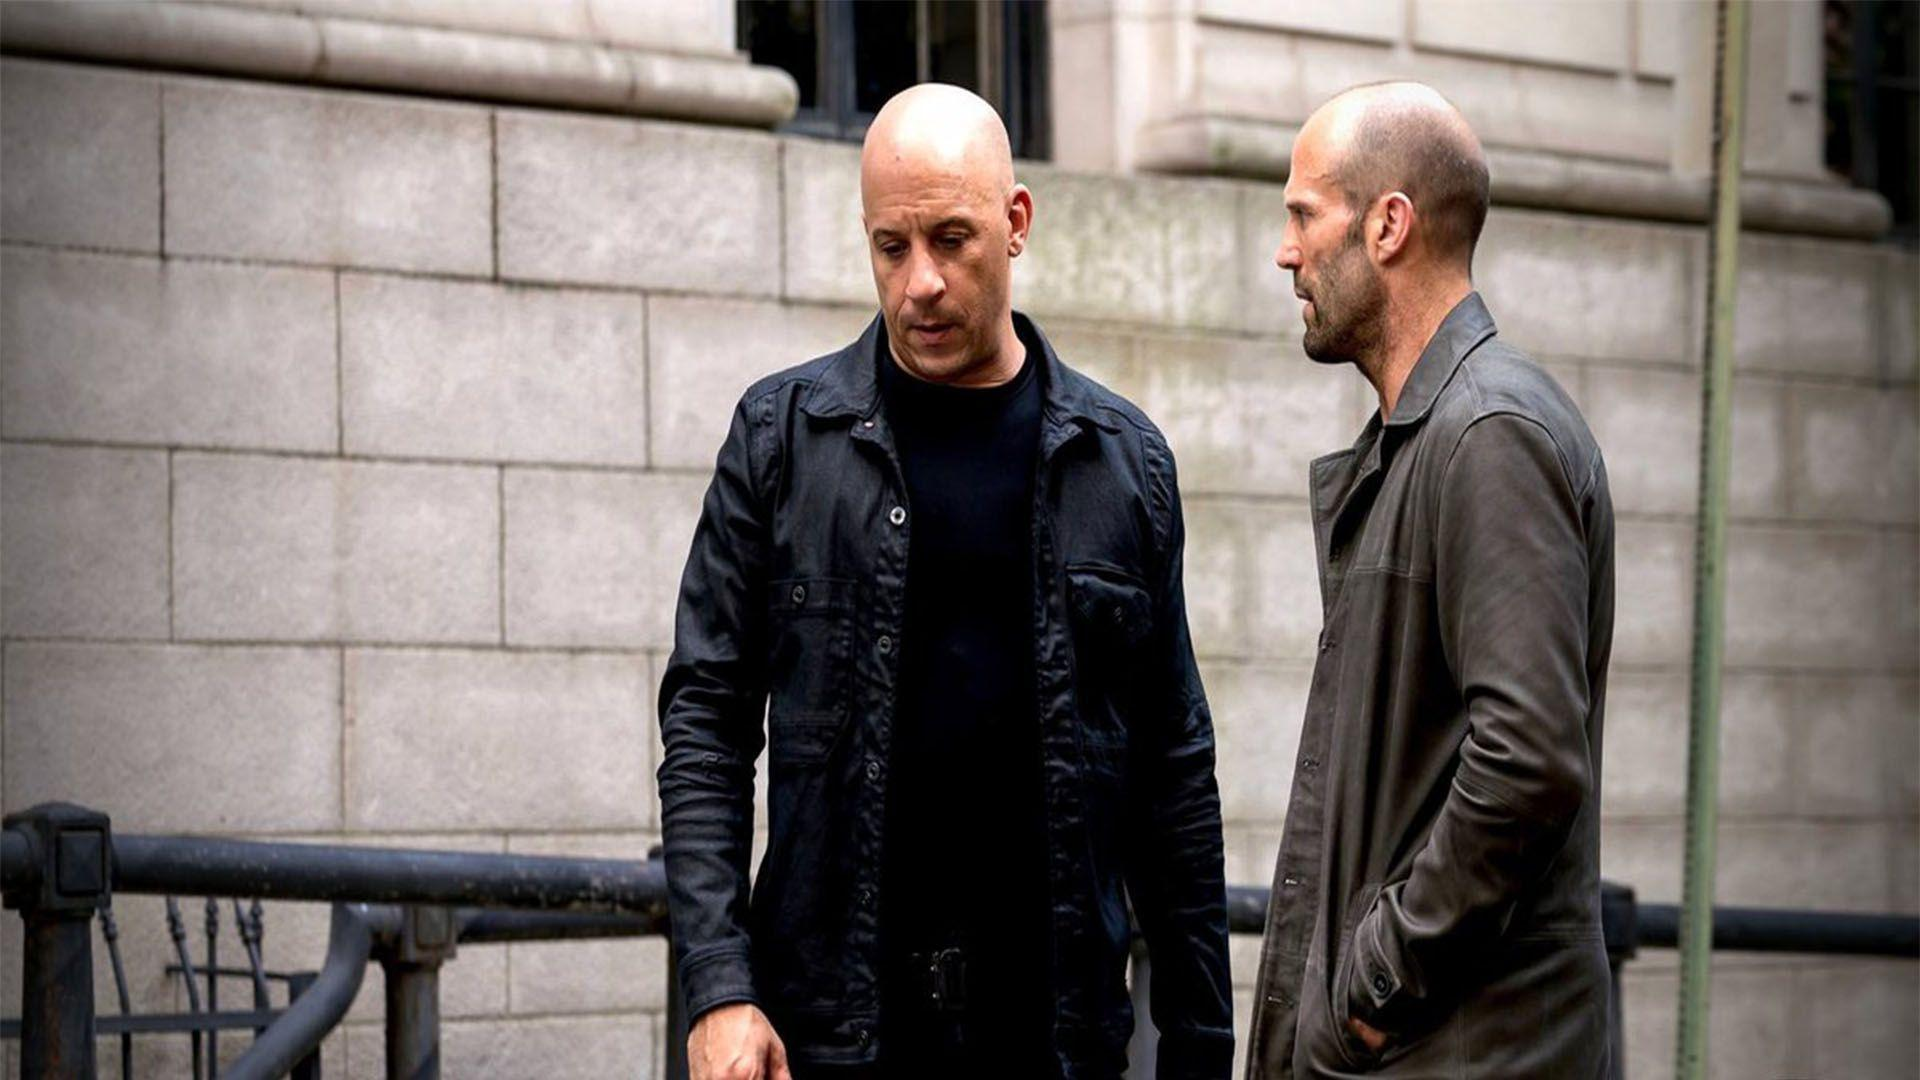 Fast & Furious 8 Movie Wallpapers - ULTRA HD Wallpapers 4K